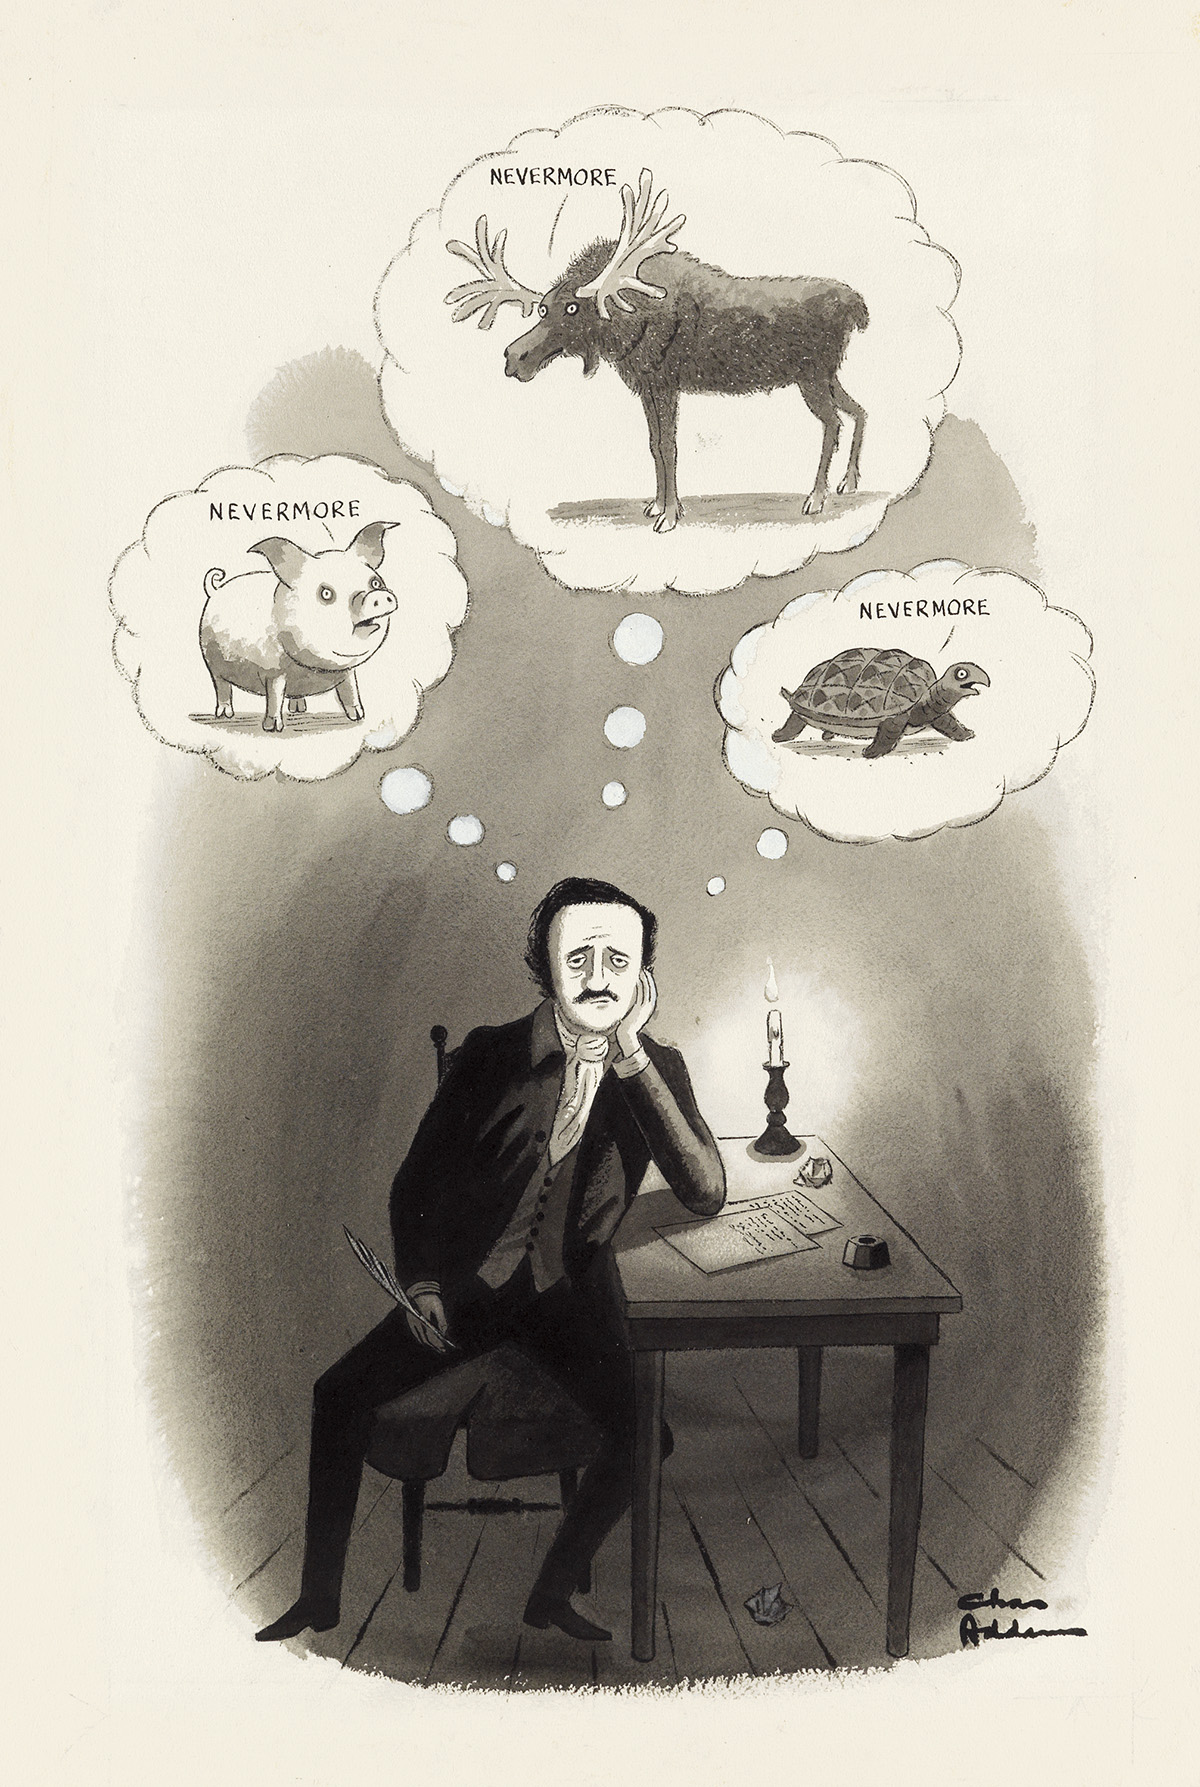 THE-NEW-YORKER-CHARLES-ADDAMS-Nevermore